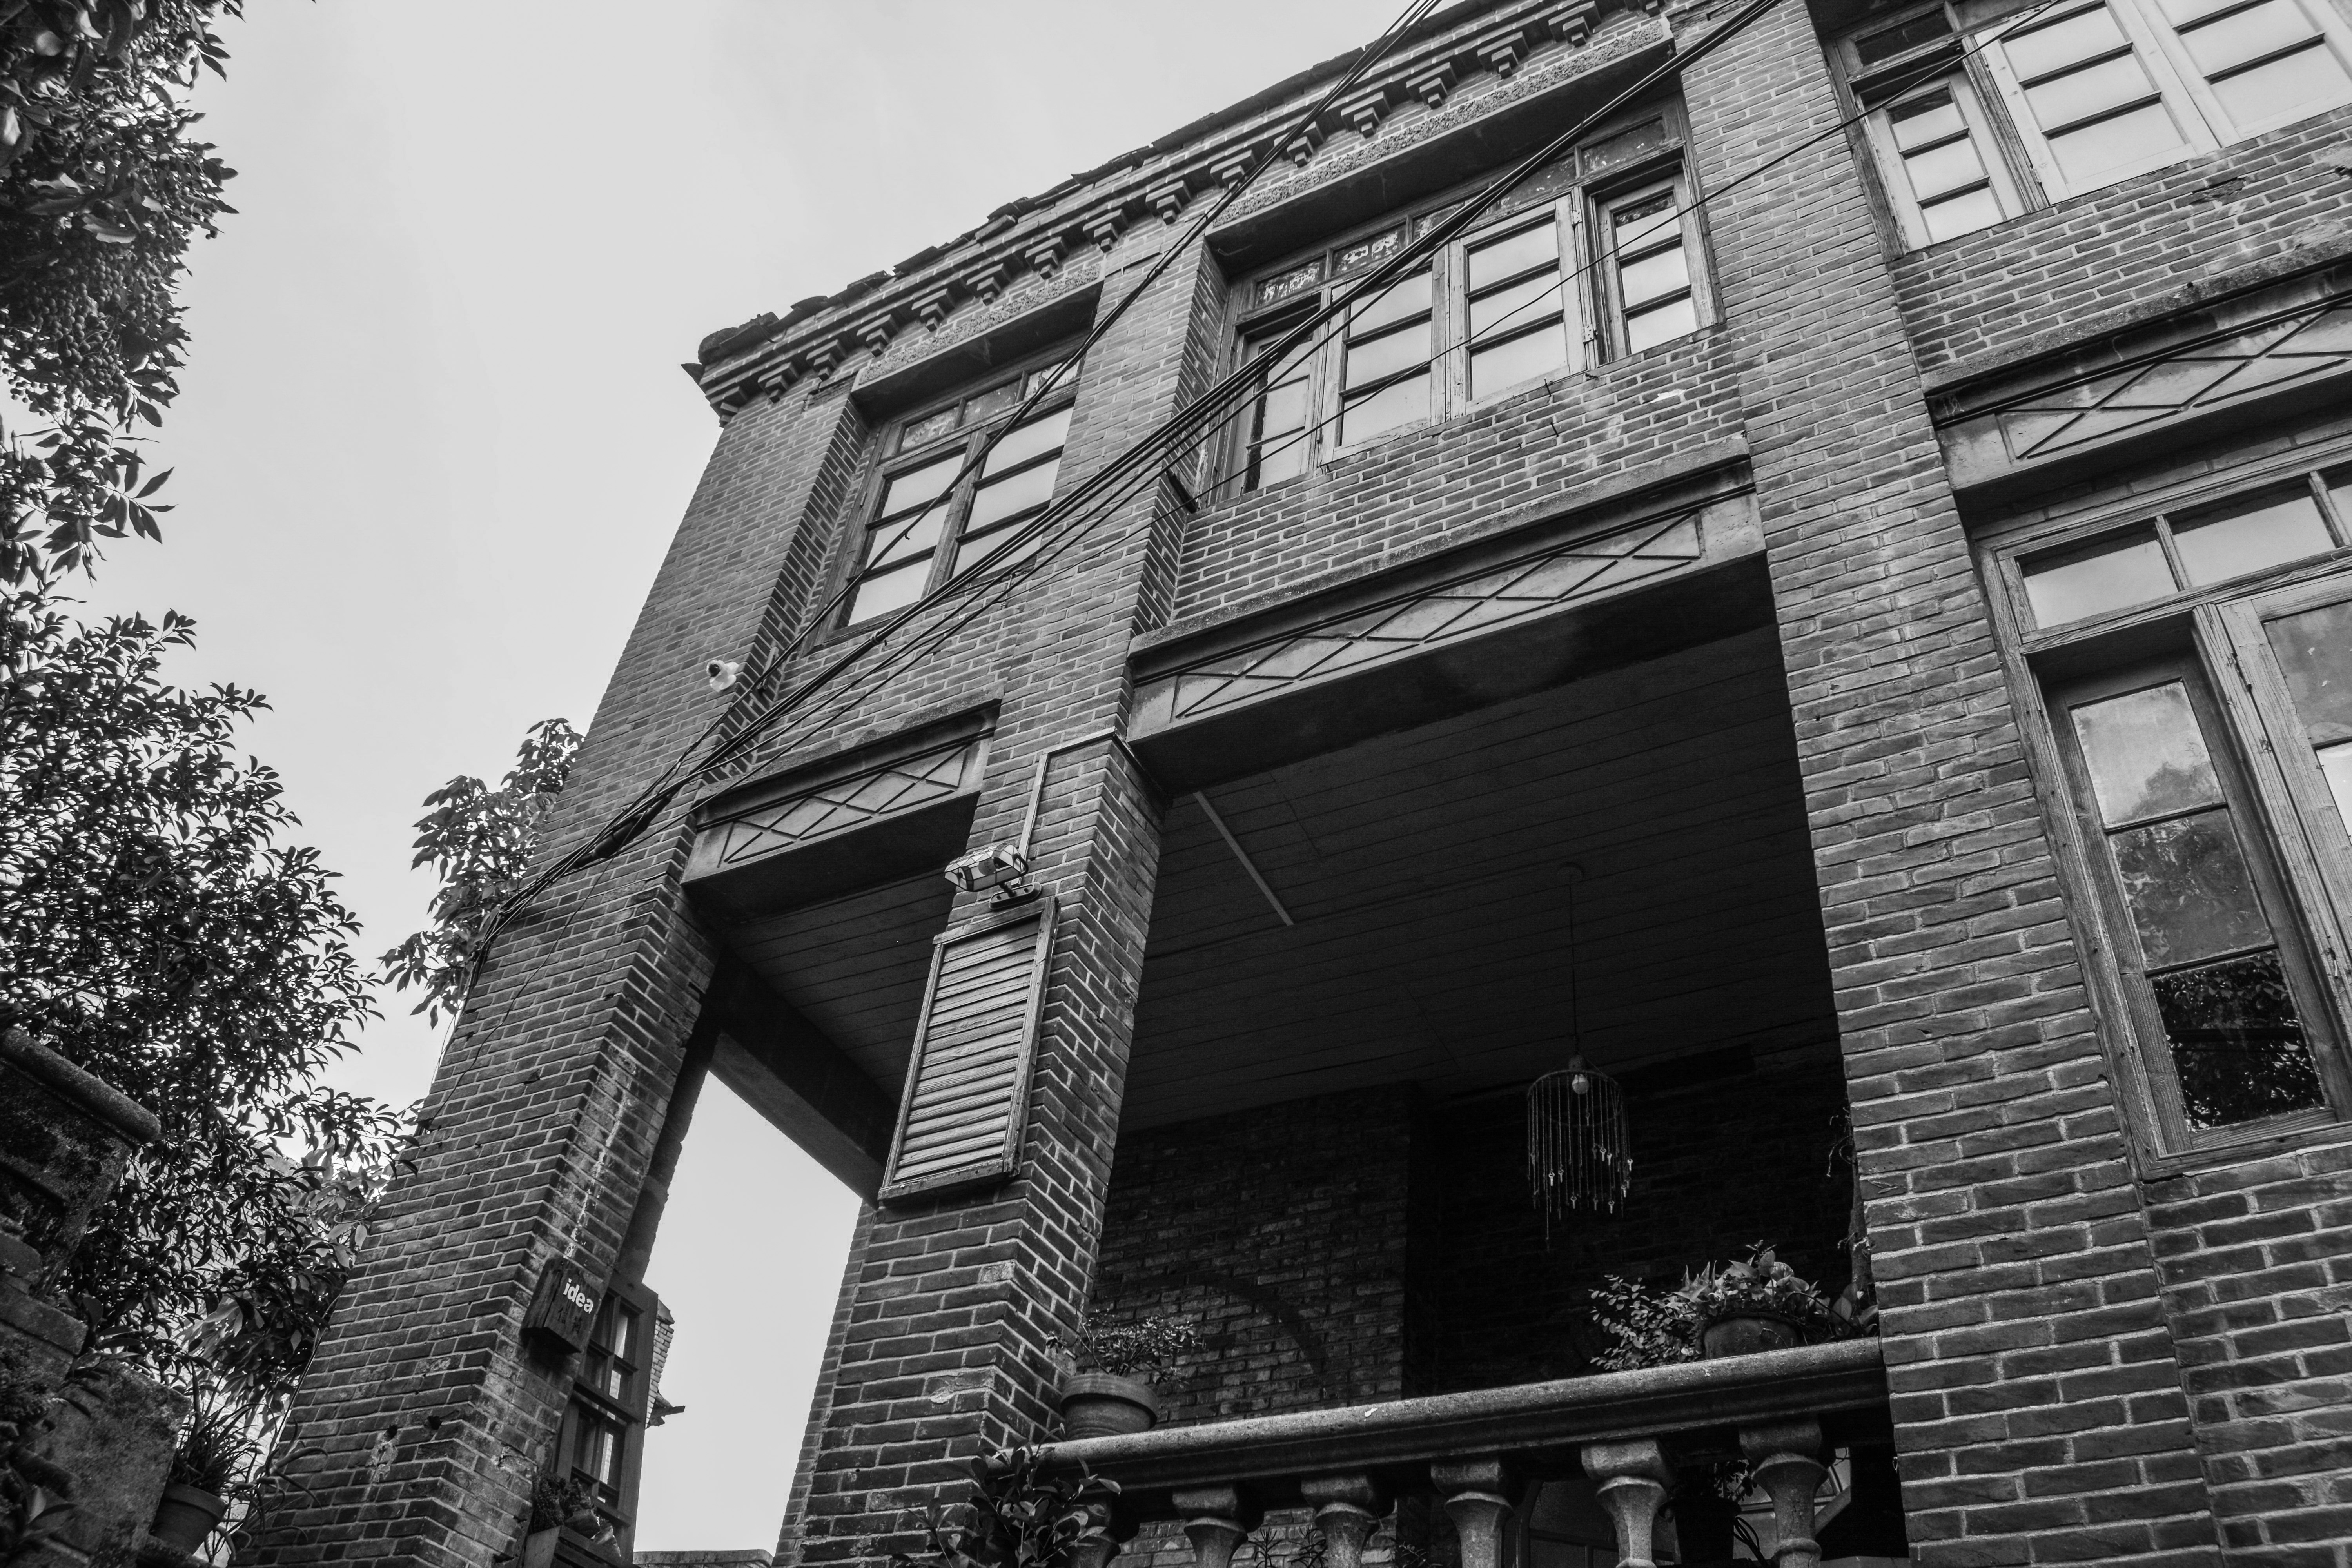 old architectural photography. By Sharing These Photos Here And On Chinese Social Media, I Wish To Raise Awareness Architectural Gems. Next Summer, Plan Do A More In-depth Old Photography